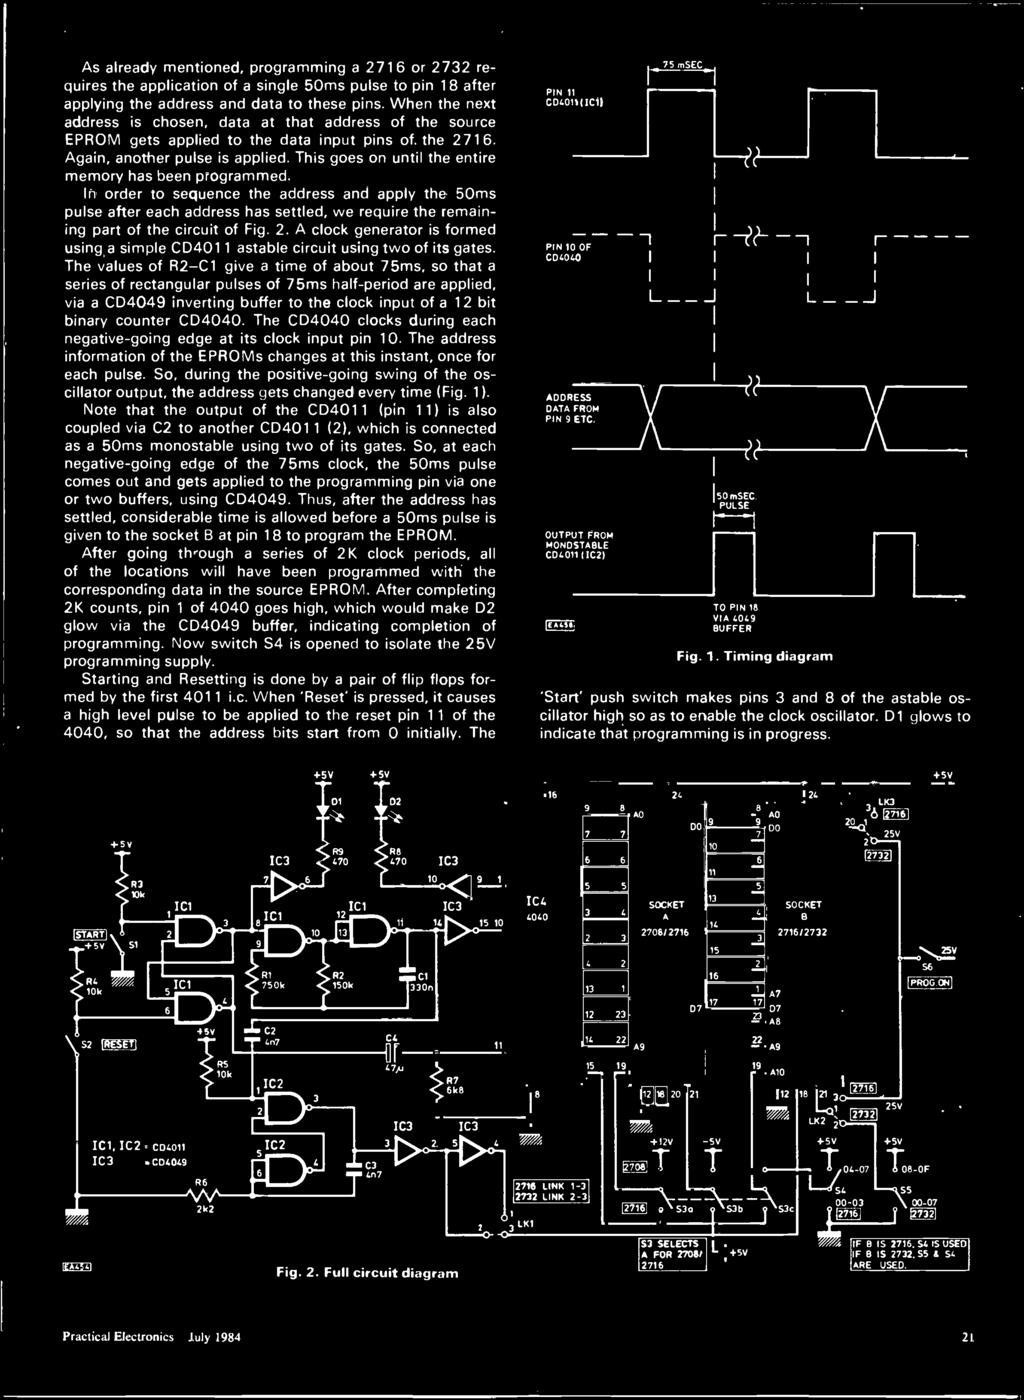 Electron Cs Isu Ige Practi Cal Sli 90p July 1984 Logic Analvbe Gasoline Generator Accessoriesspare Partscircuit Breaker Fits For This Goes On Until The Entire Memory Has Been Programmed In Order To Sequence